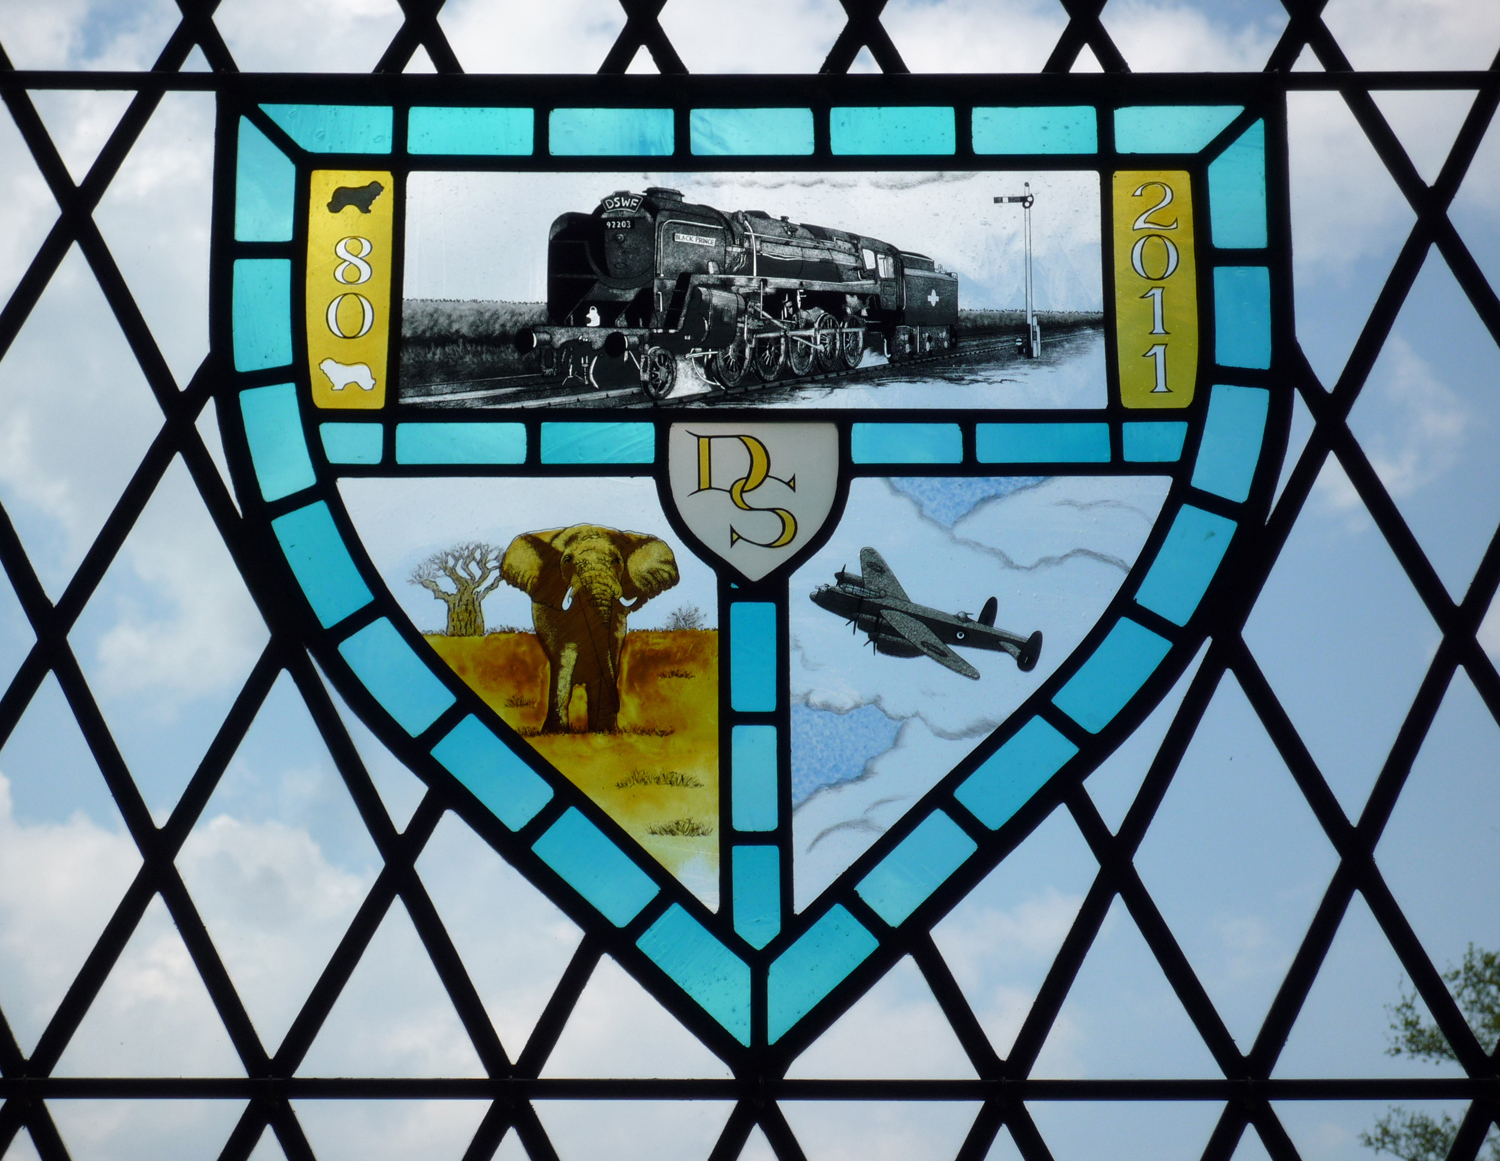 80th anniversary shield for David Shepherd, East Sussex.